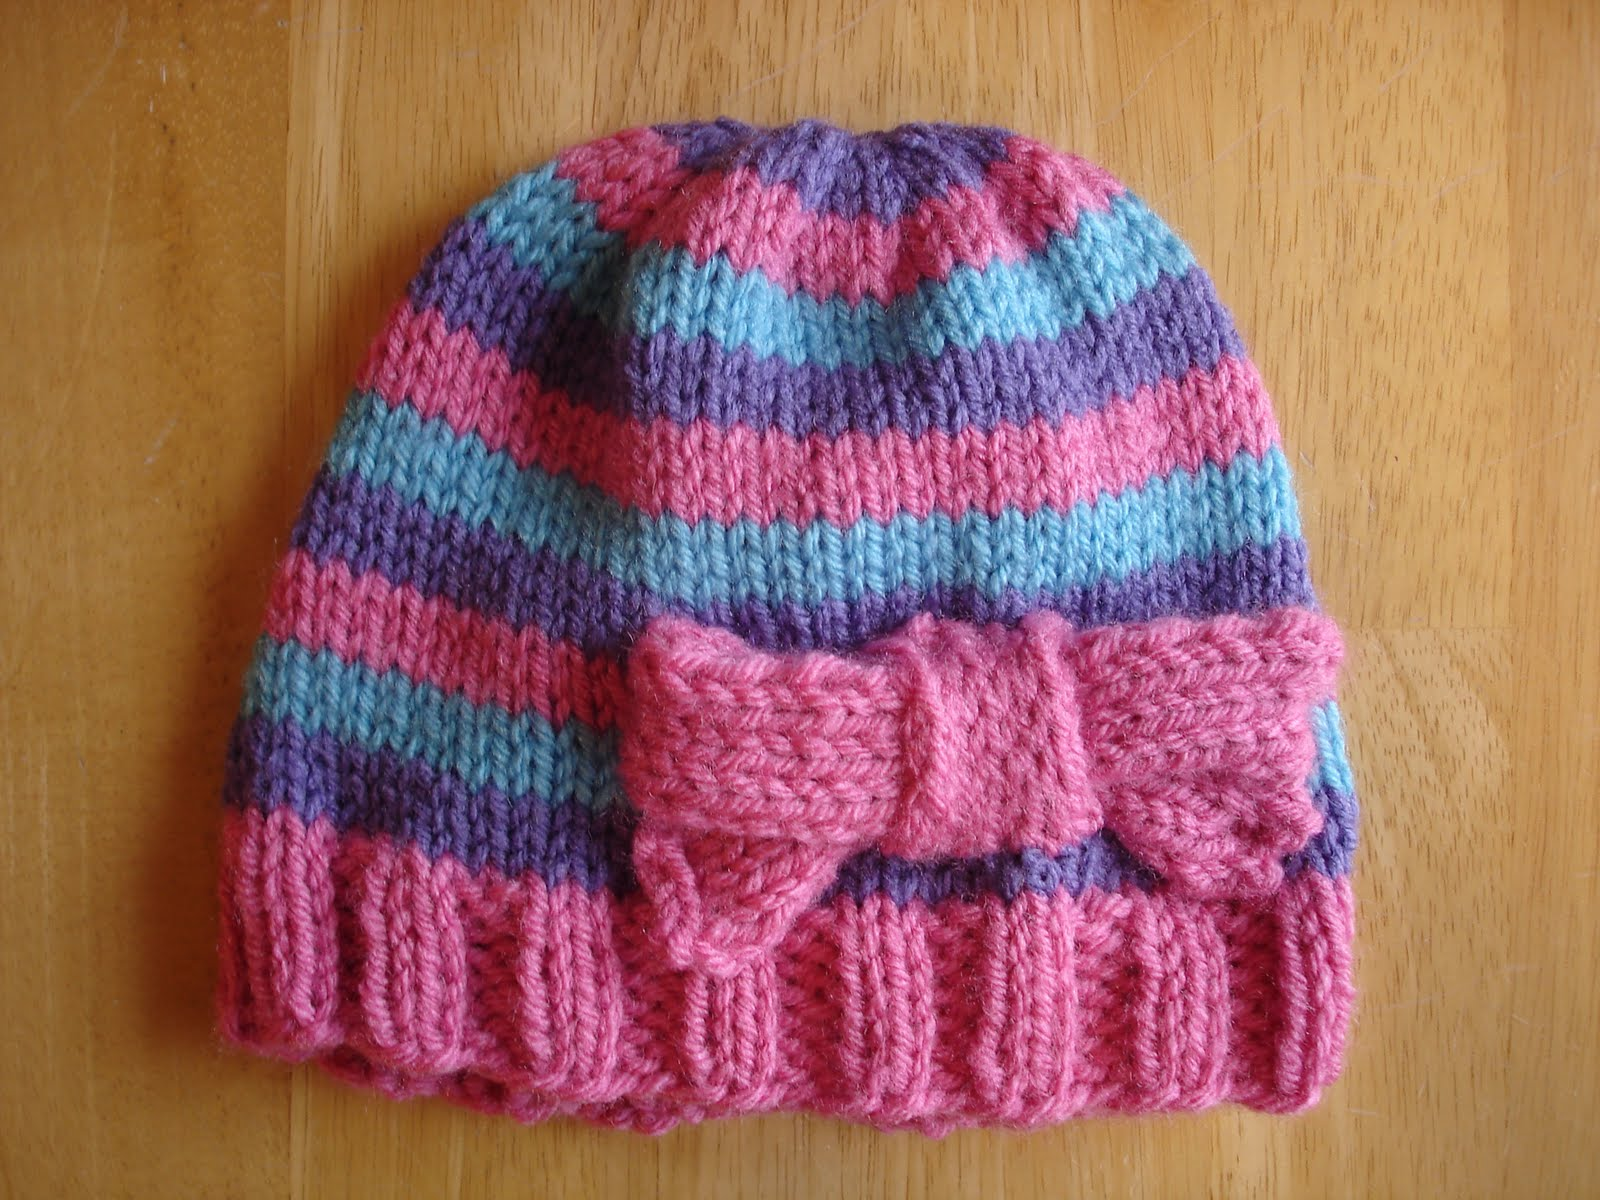 Knitting Patterns Free : Fiber Flux: Free Knitting Pattern...Super Pink Toddler Hat!